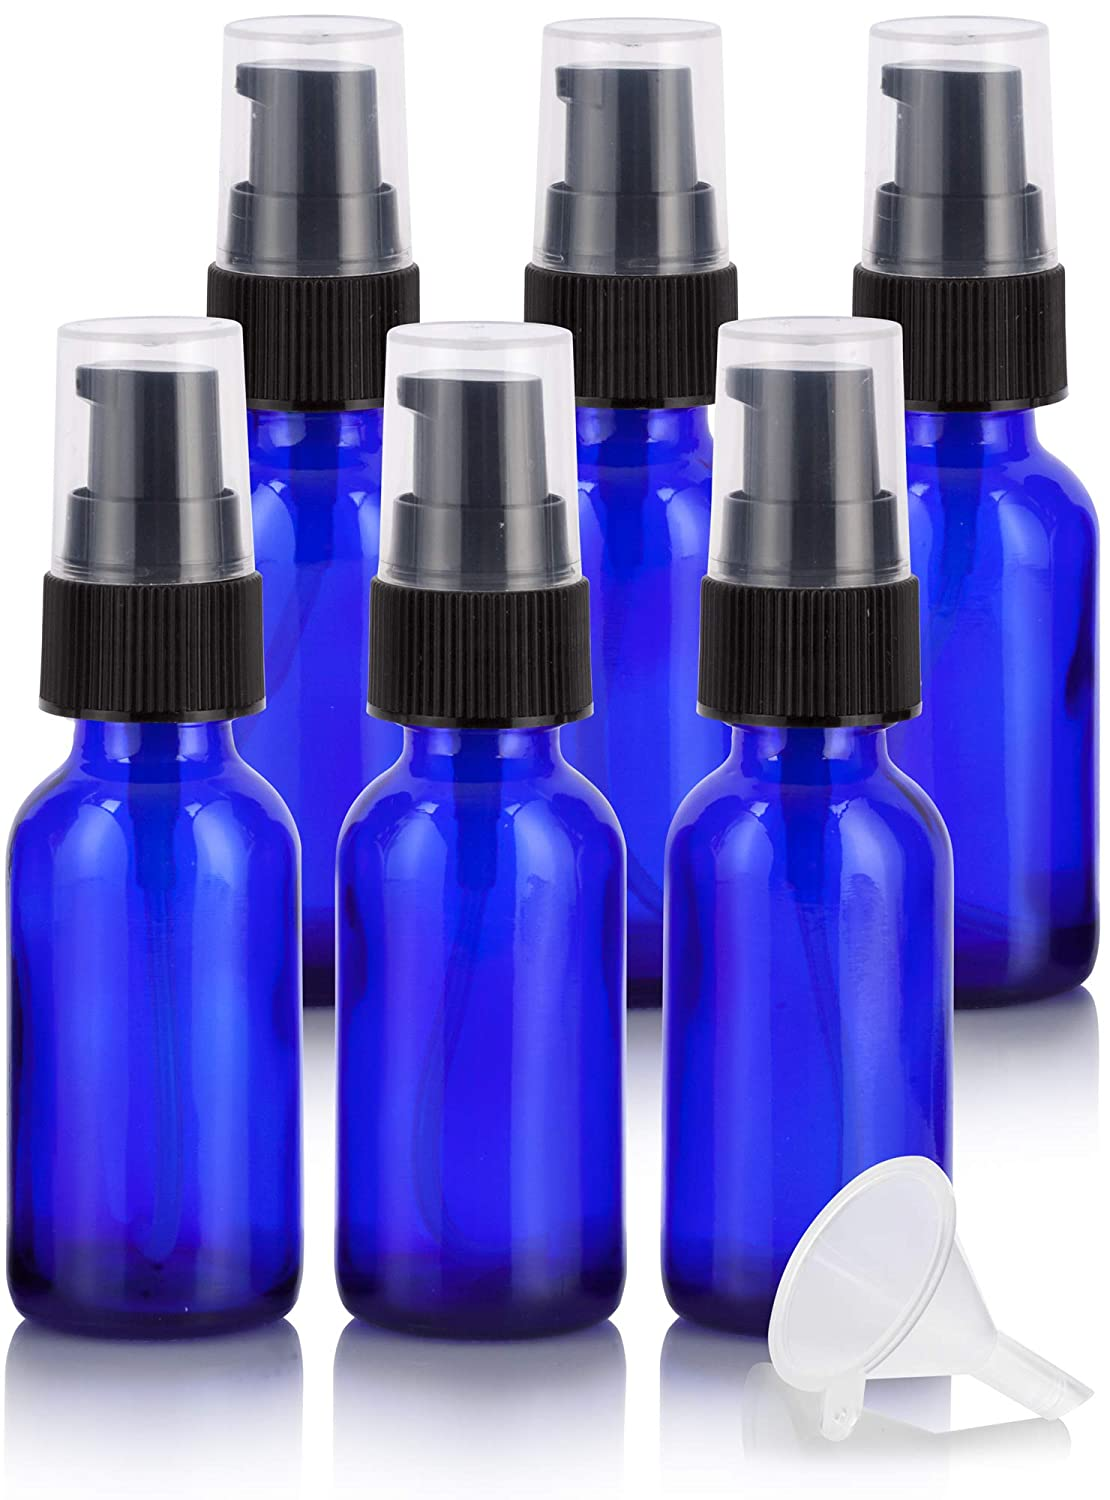 1 oz Cobalt Blue Glass Boston Round Treatment Pump Bottle 6 Pack Funnel for Essential Oils, Aromatherapy, Food Grade, bpa Free